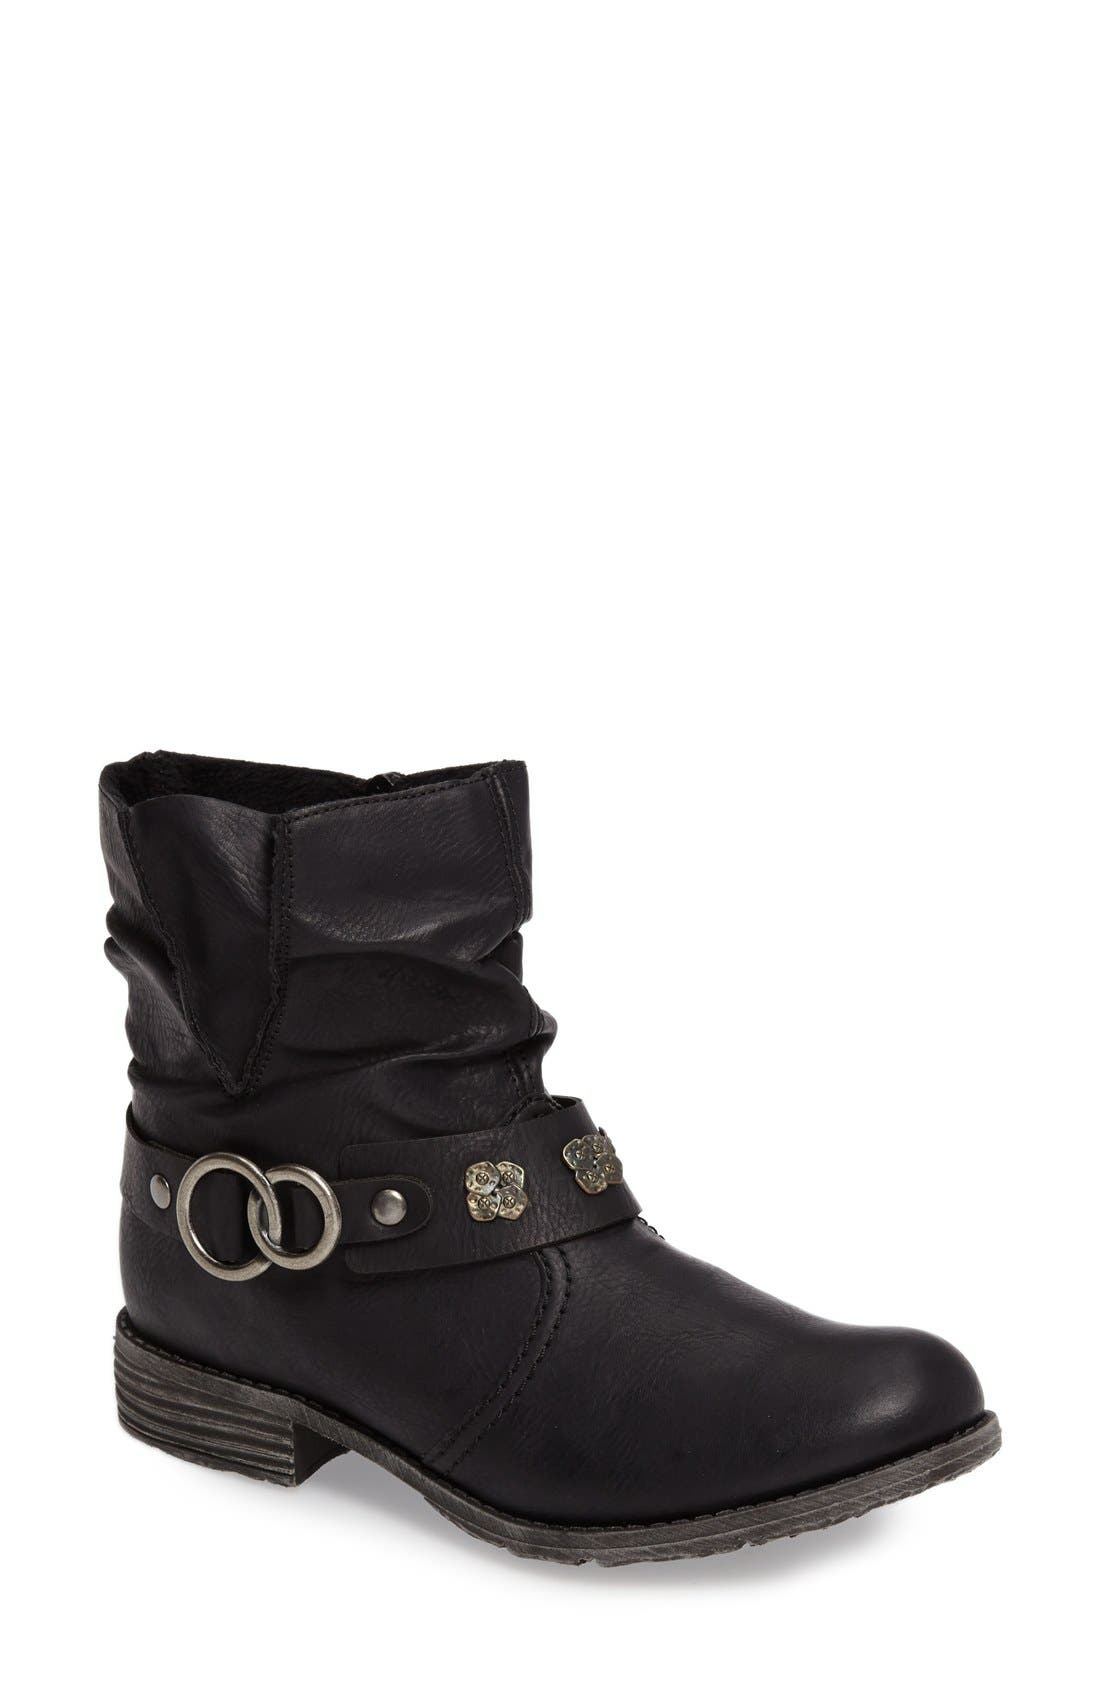 Rieker Antistress 'Peggy' Boot,                         Main,                         color, Black